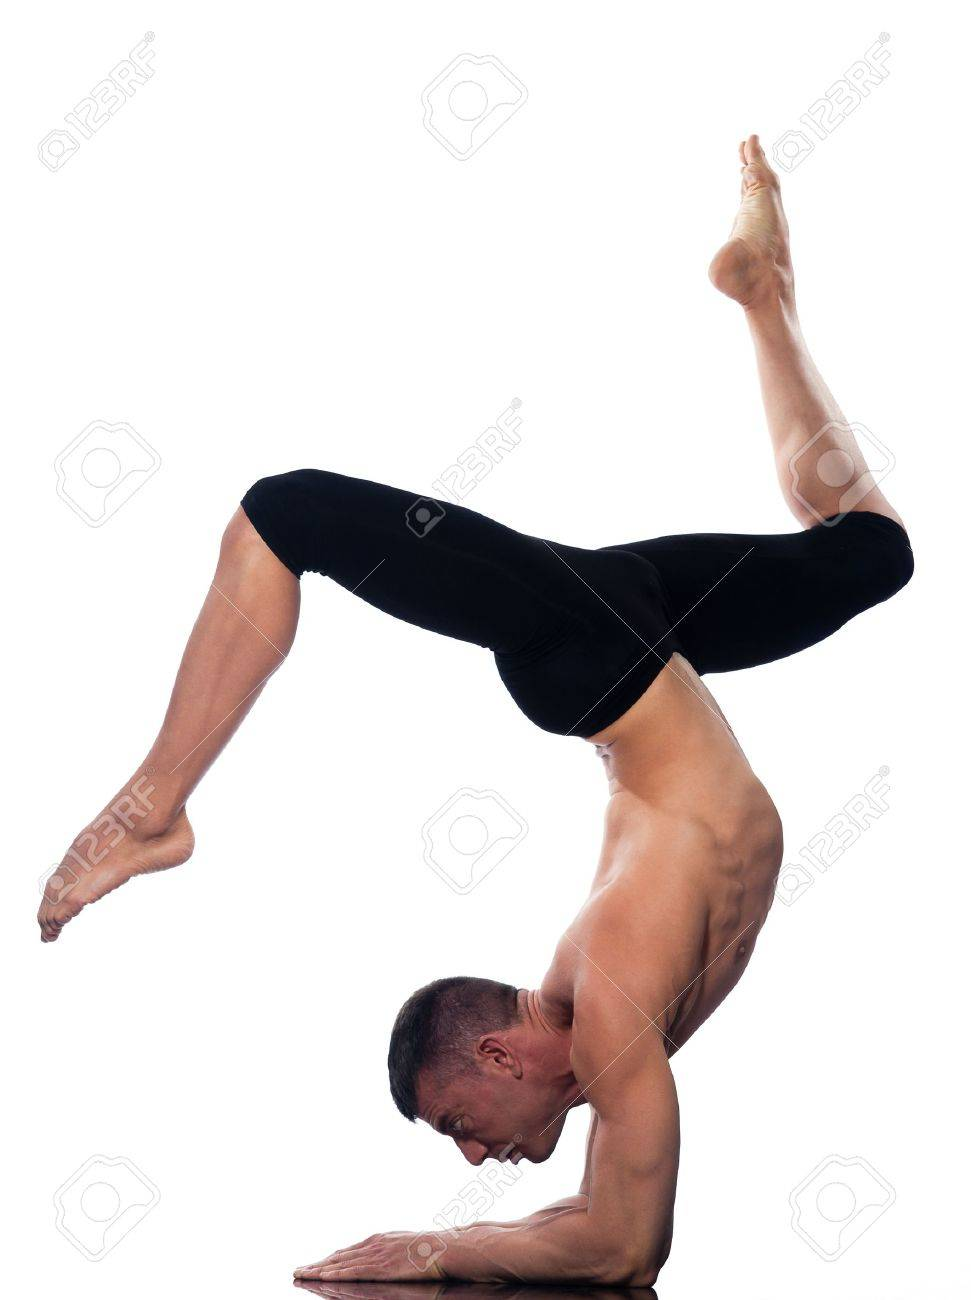 caucasian man Eka Pada Viparita Dandasana One-legged Inverted Staff  pose stretch acrobatics yoga balance posture isolated studio on white background Stock Photo - 11766454